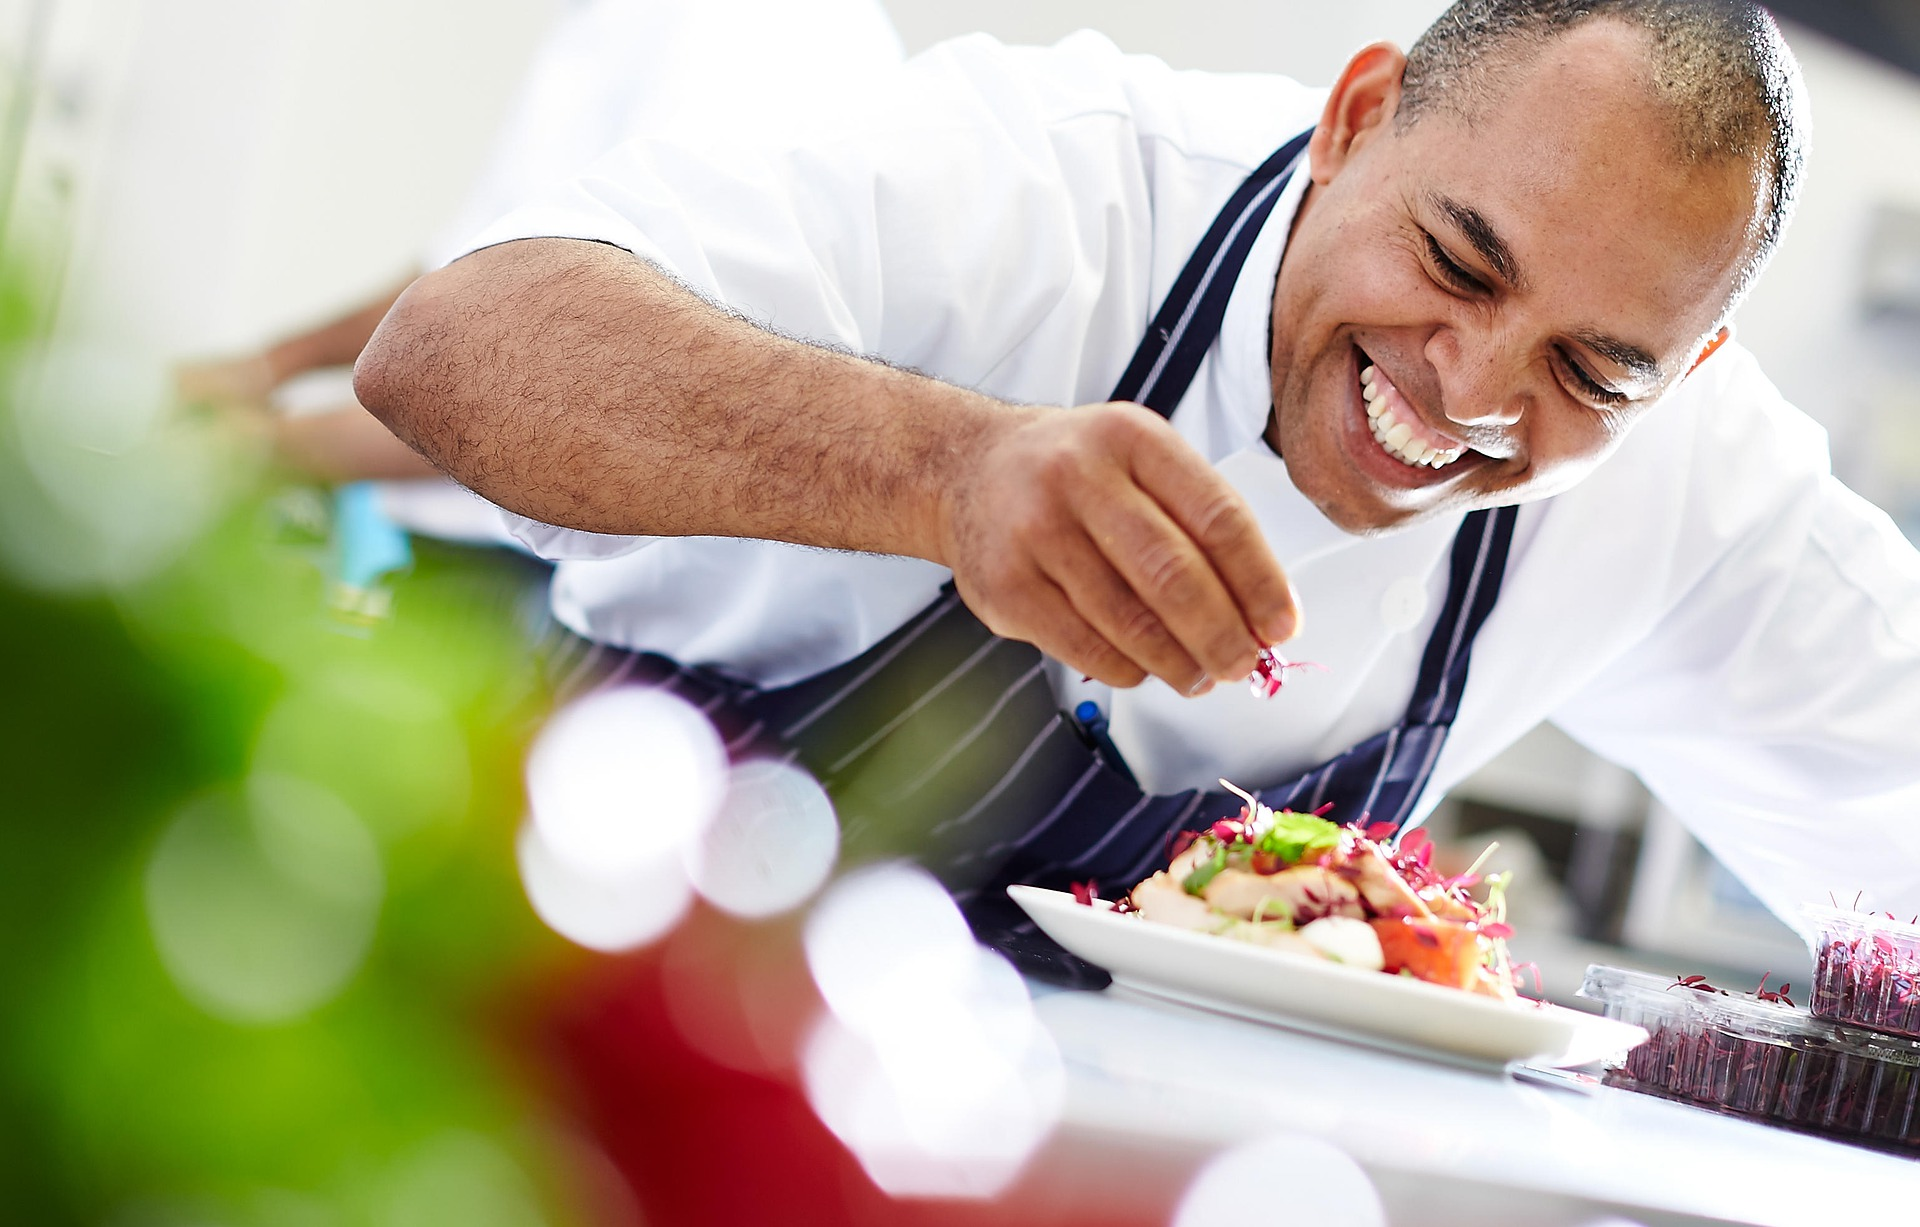 Take His Job for a Day: Chef.